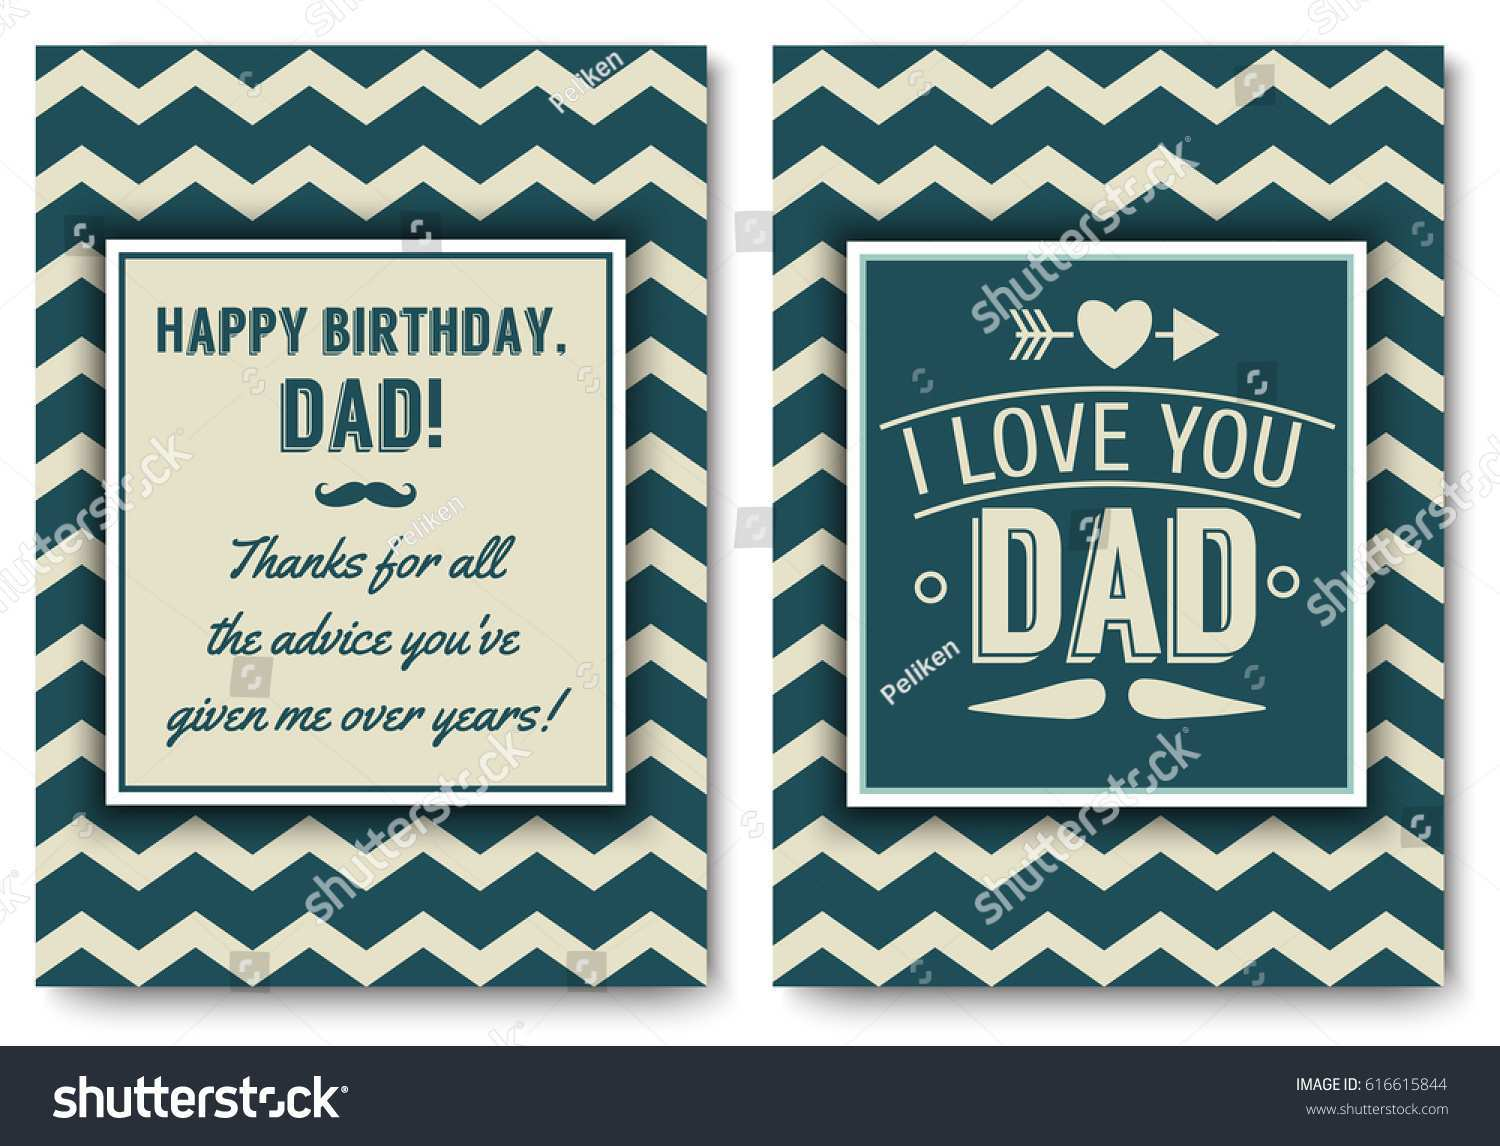 91 Create Birthday Card Template For Dad in Photoshop for Birthday Card Template For Dad